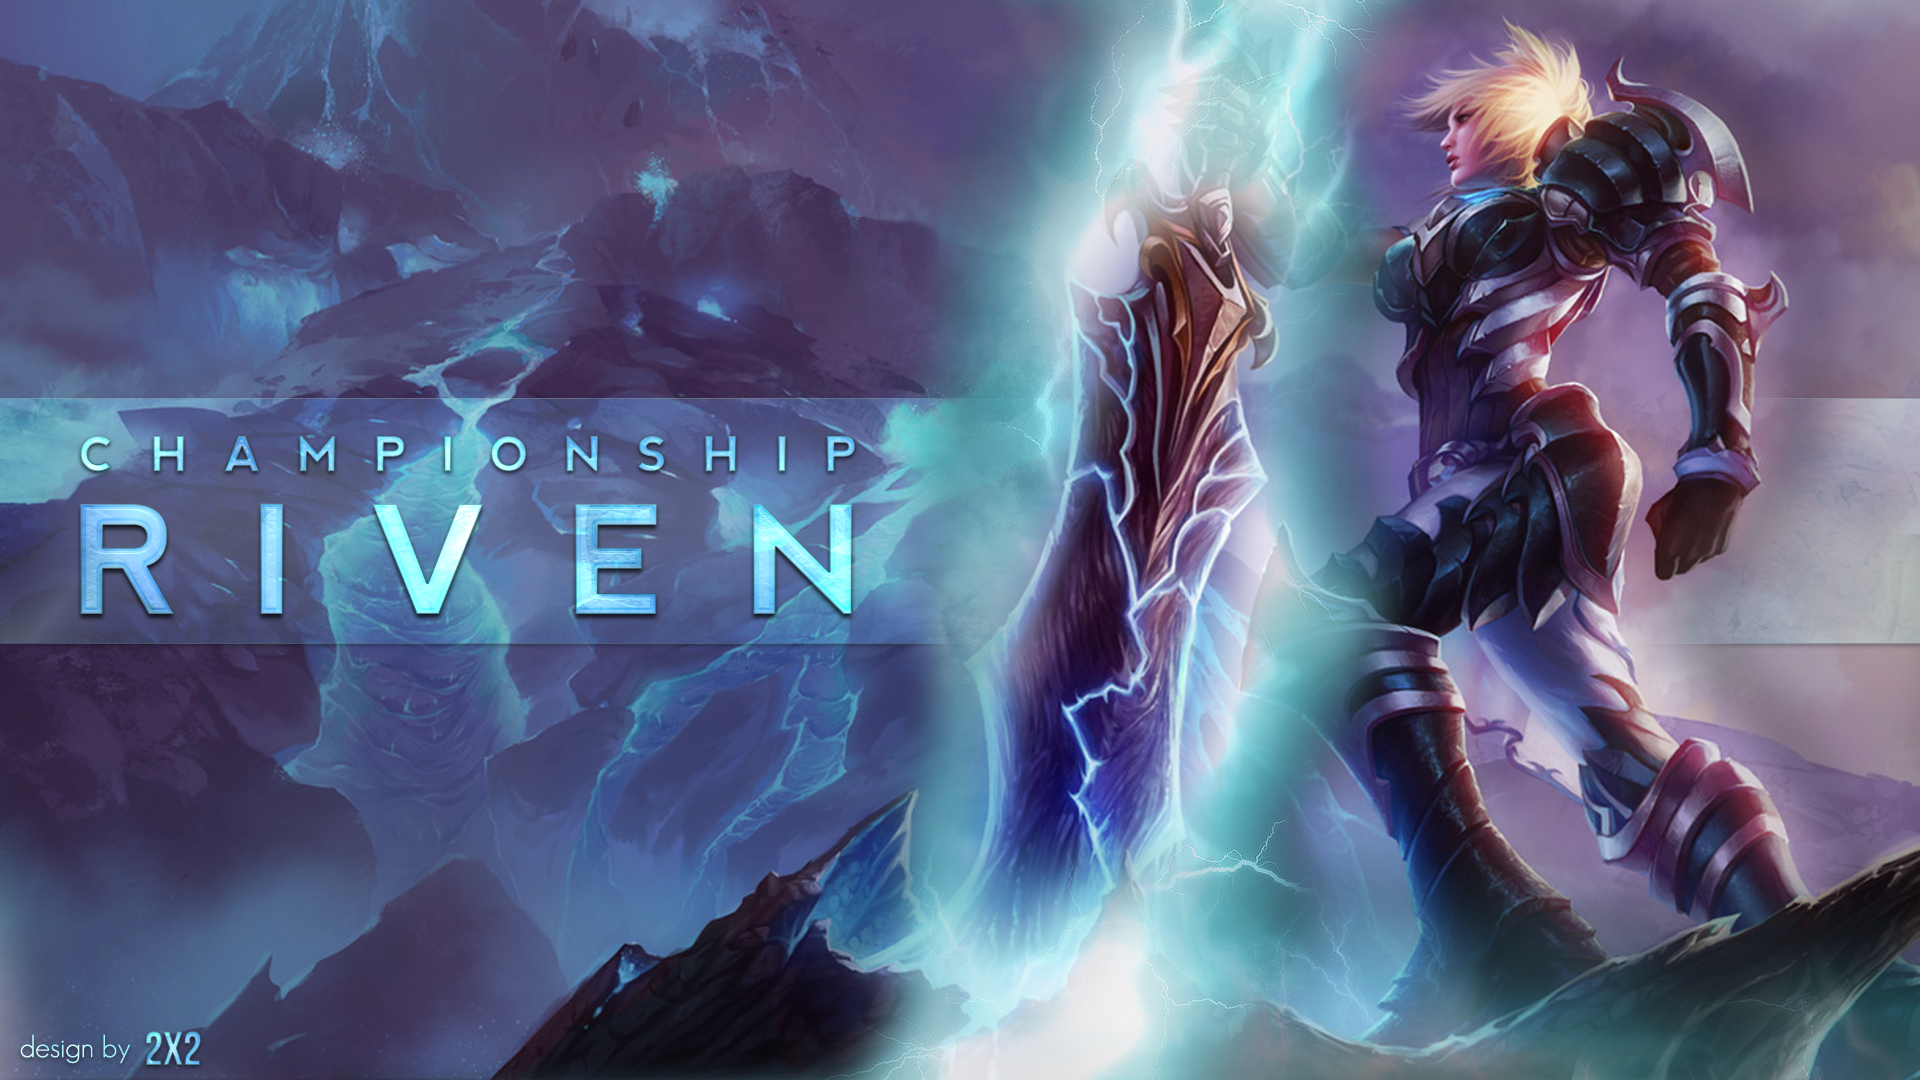 Championship Riven Wallpaper - WallpaperSafari